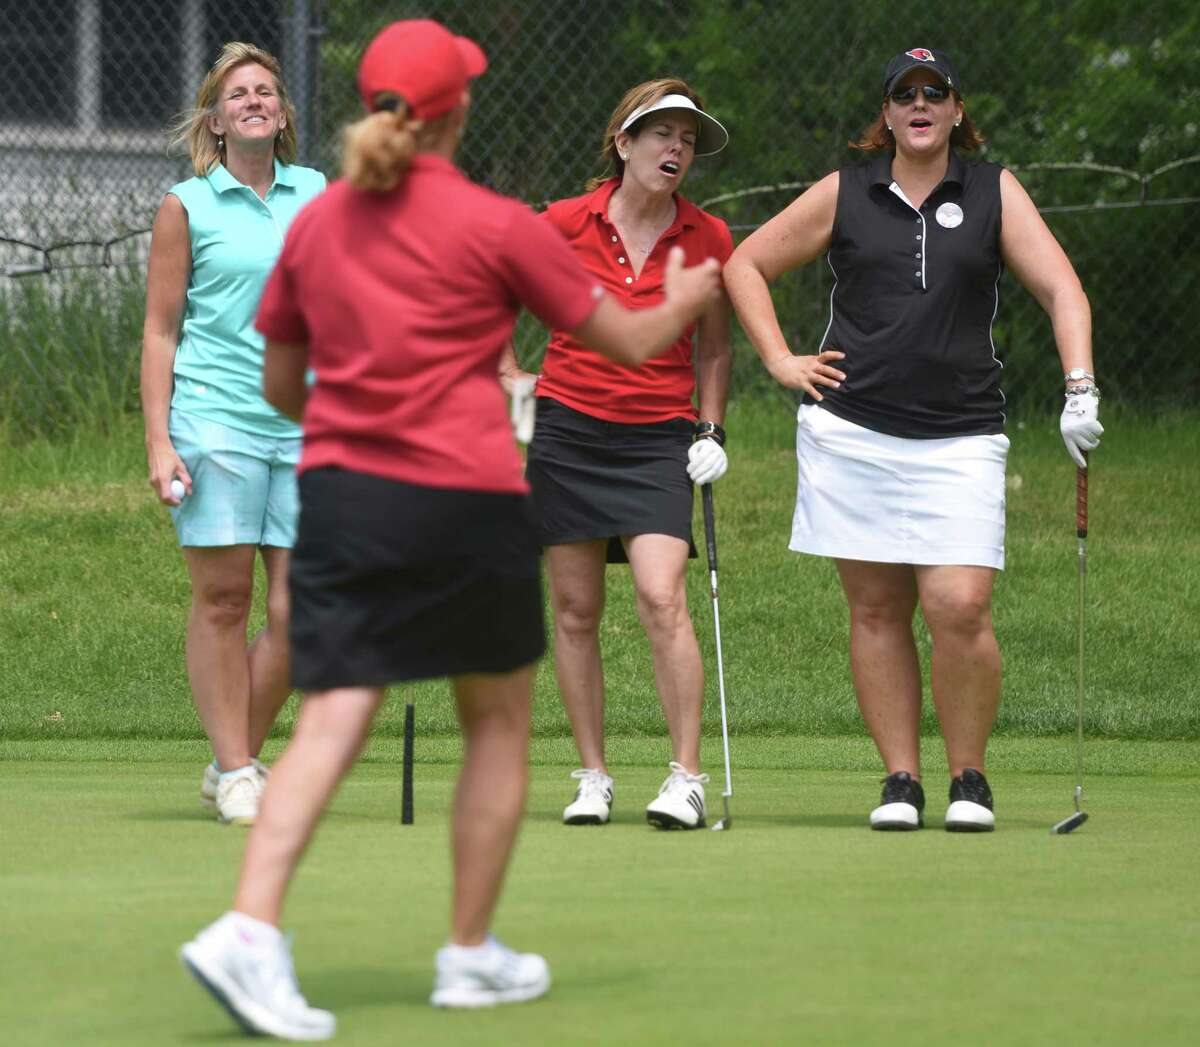 Greenwich women, from left, Patty Waurishuk, Renee Murphy, Maureen Sheehan and Laurie Meek react to a missed putt during the Greenwich High School football annual fundraiser golf tournament at E. Gaynor Brennan Golf Course in Stamford, Conn. Monday, June 8, 2015. Thirty foursomes, a total of 120 people, participated in this year's best-ball tournament to raise money for the Greenwich High School football program.